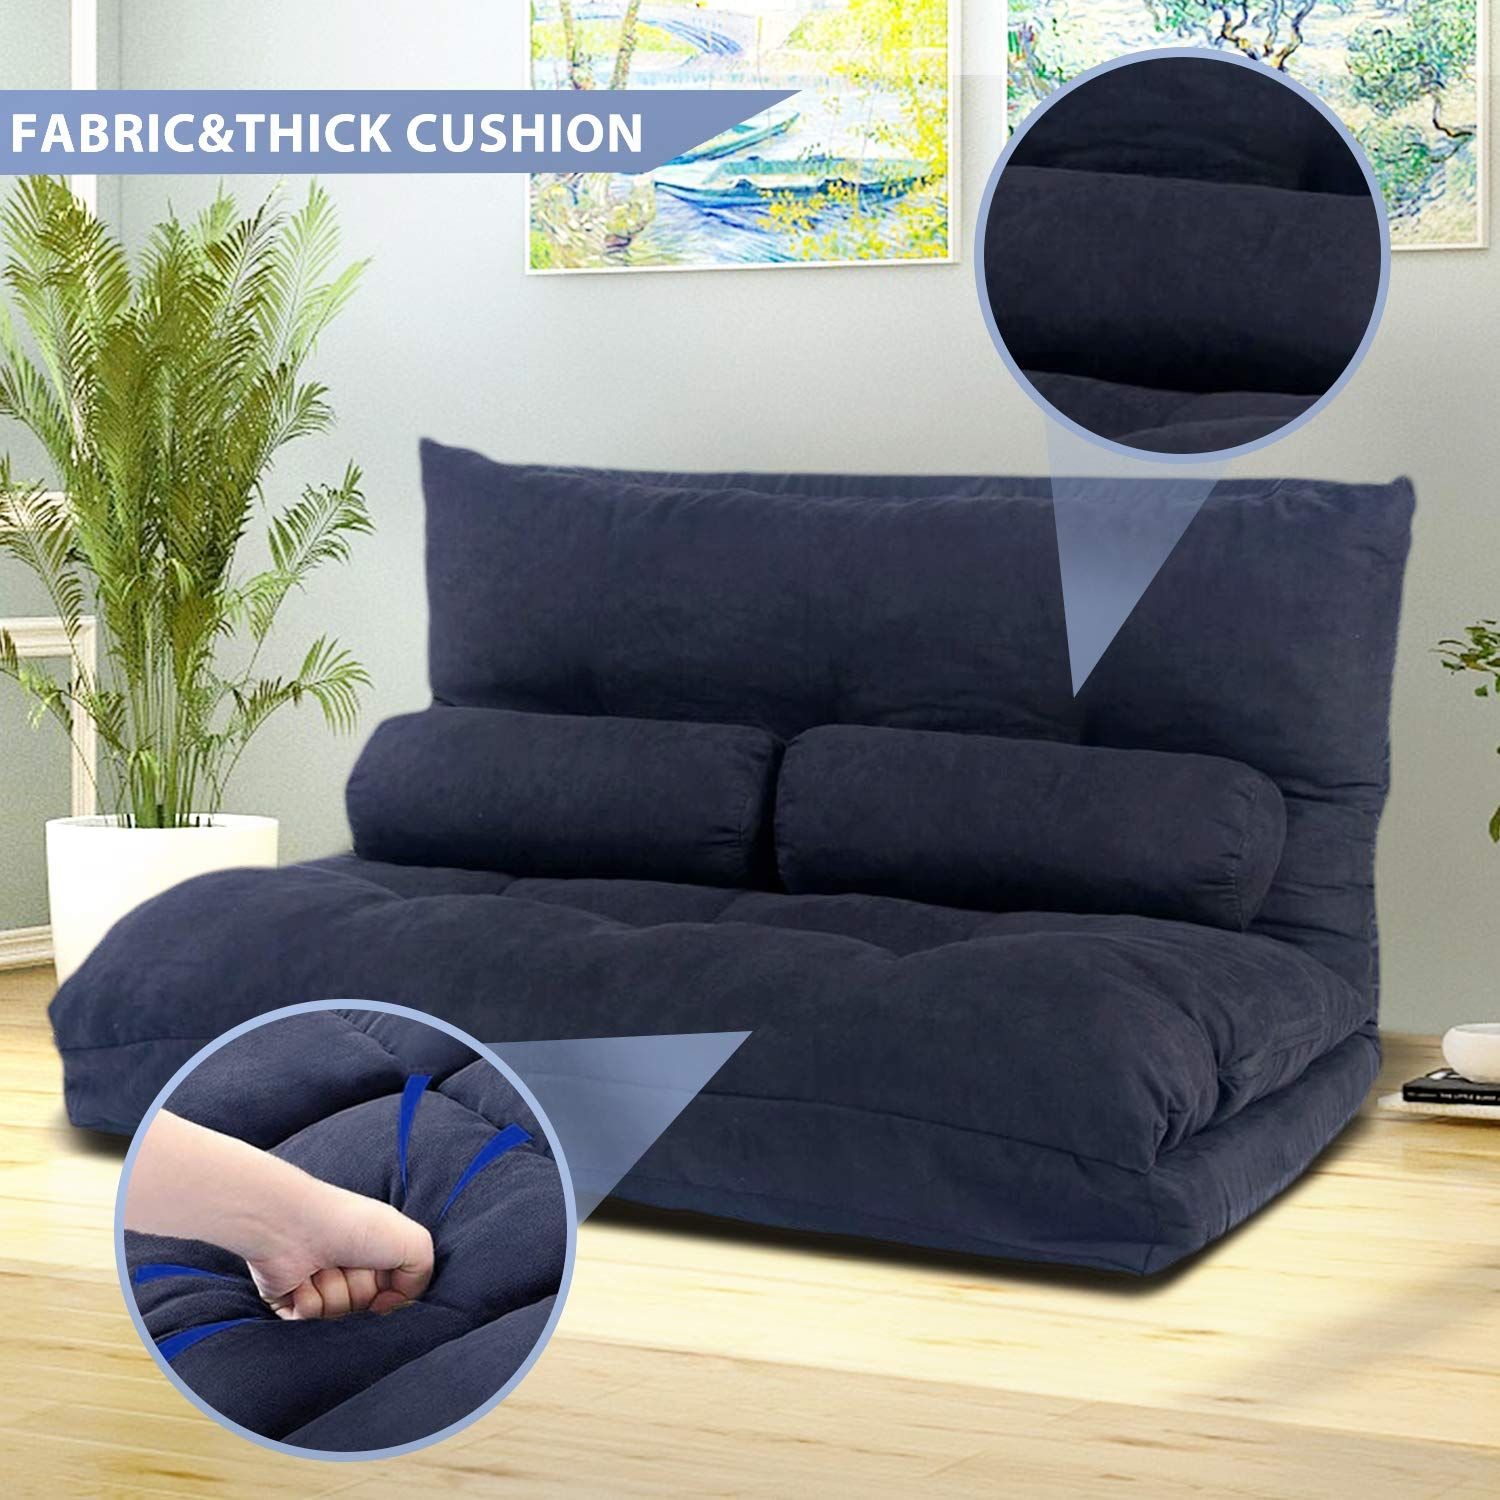 Amazon Com Floor Sofa Bed Foldable Sleeper Bed 5 Position Reclining Futon Sofa Lazy Sofa Couches With 2 Pillows